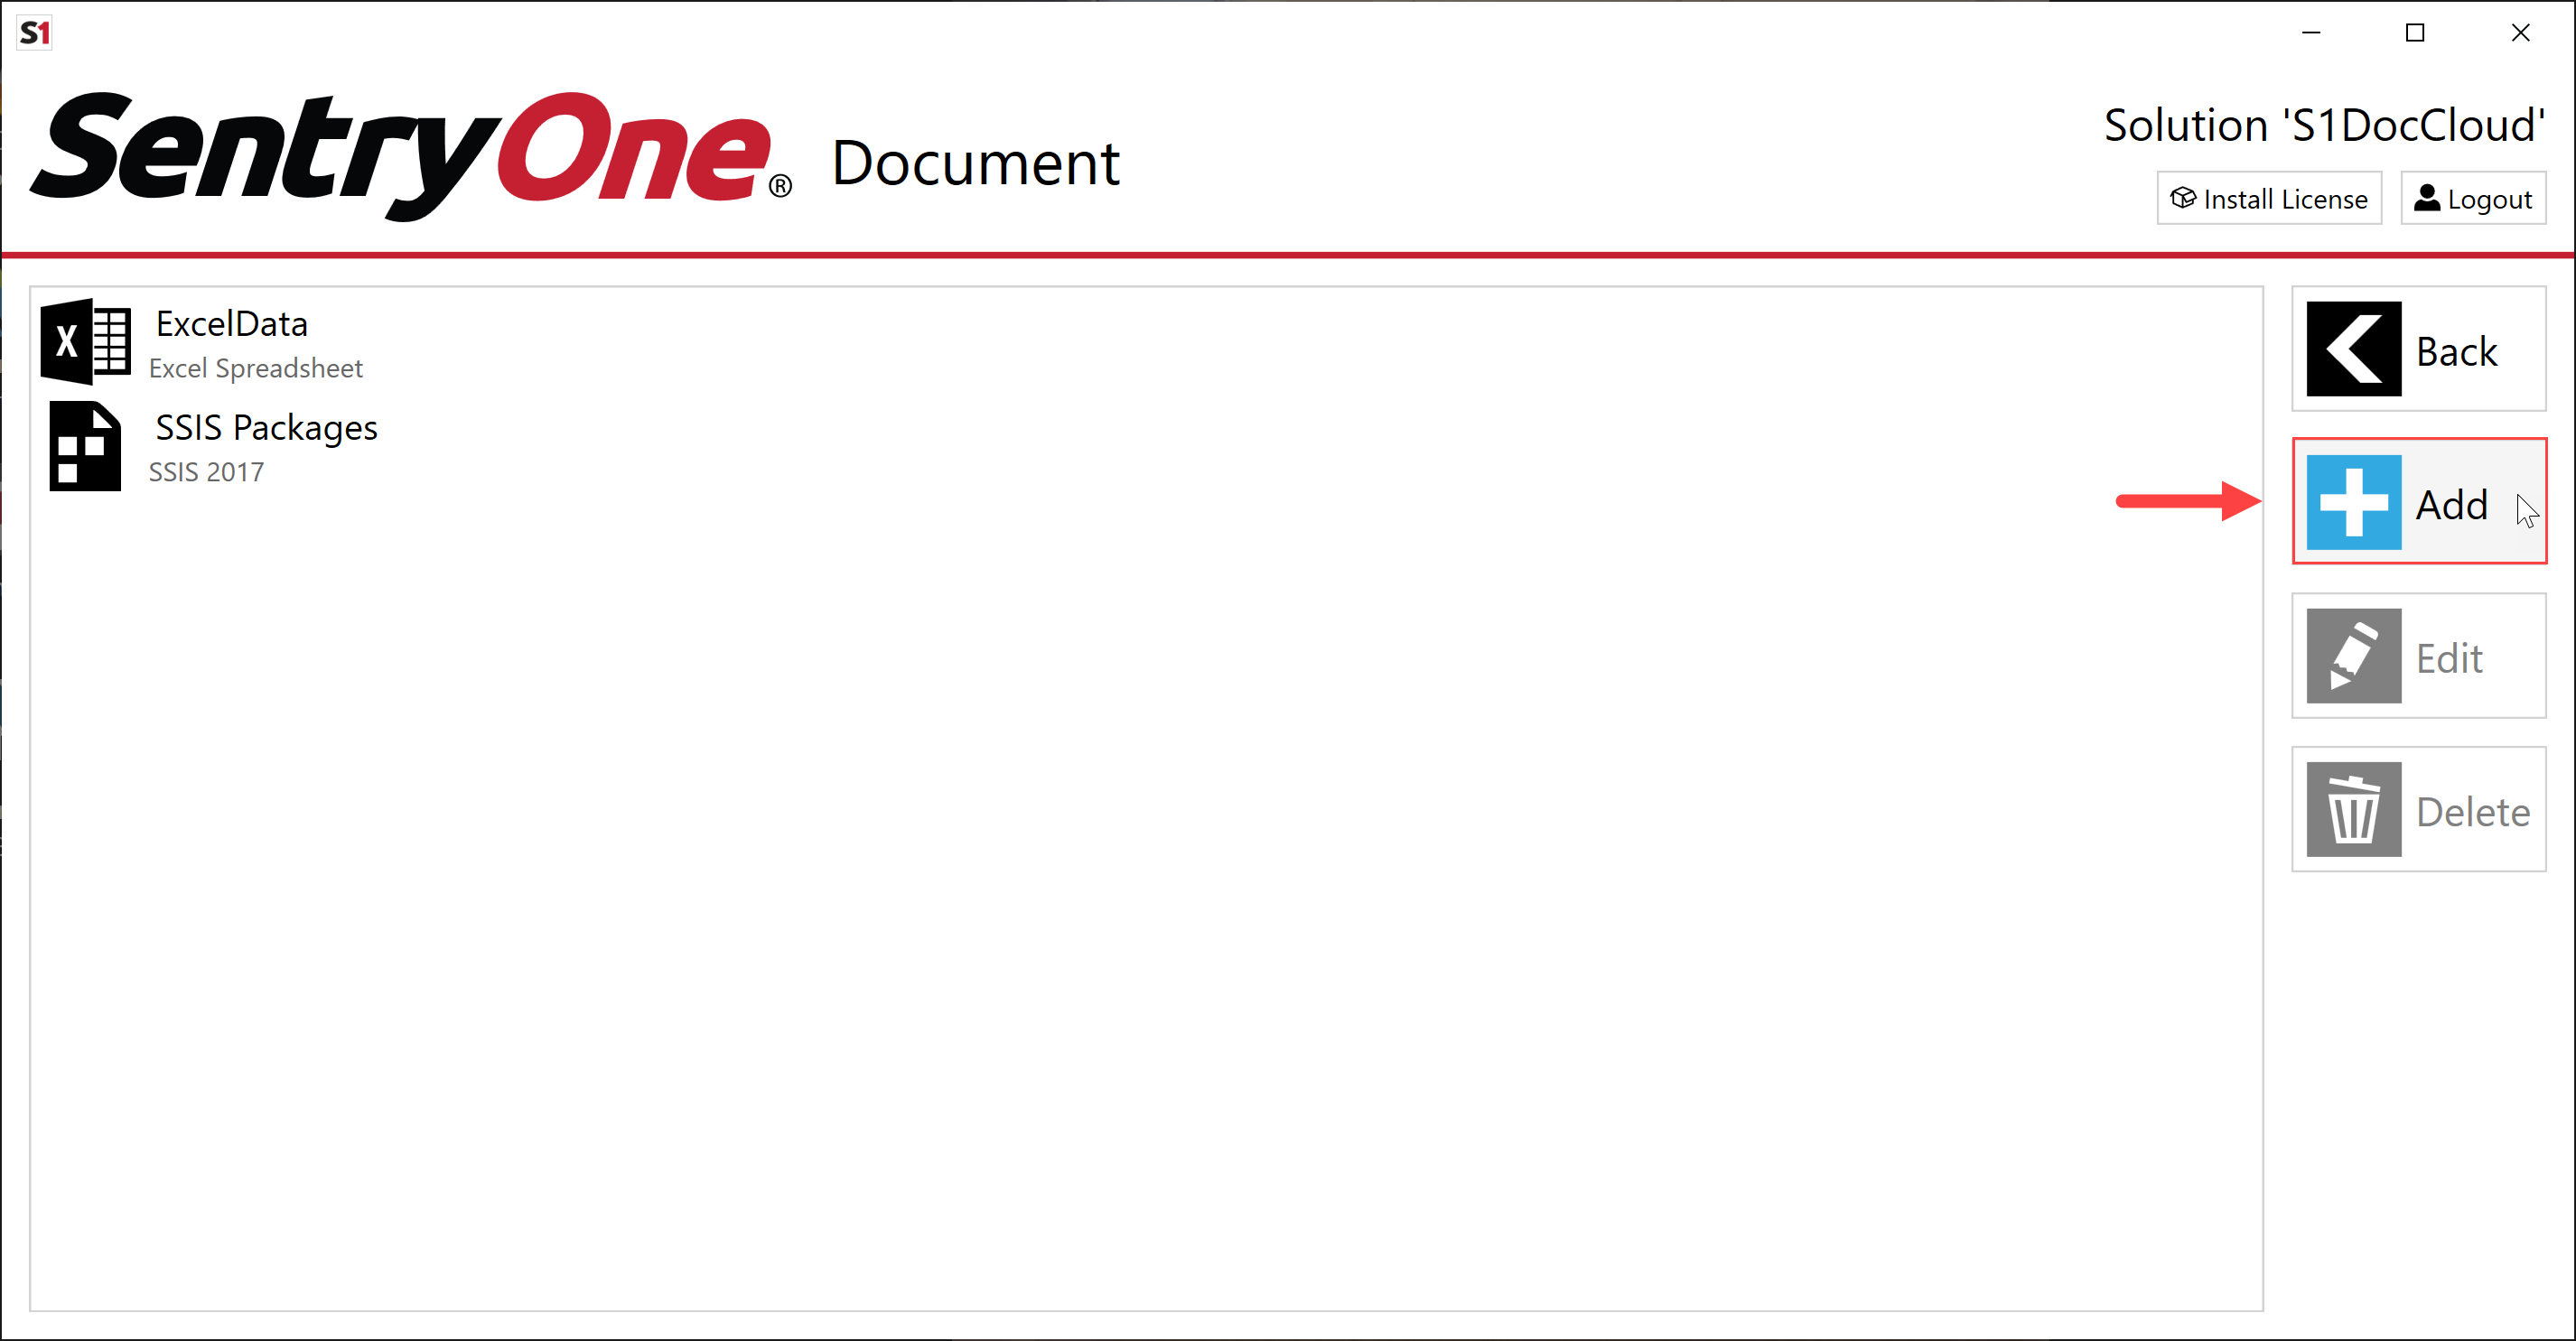 SentryOne Document Solution Configuration Tool Add Solution Item